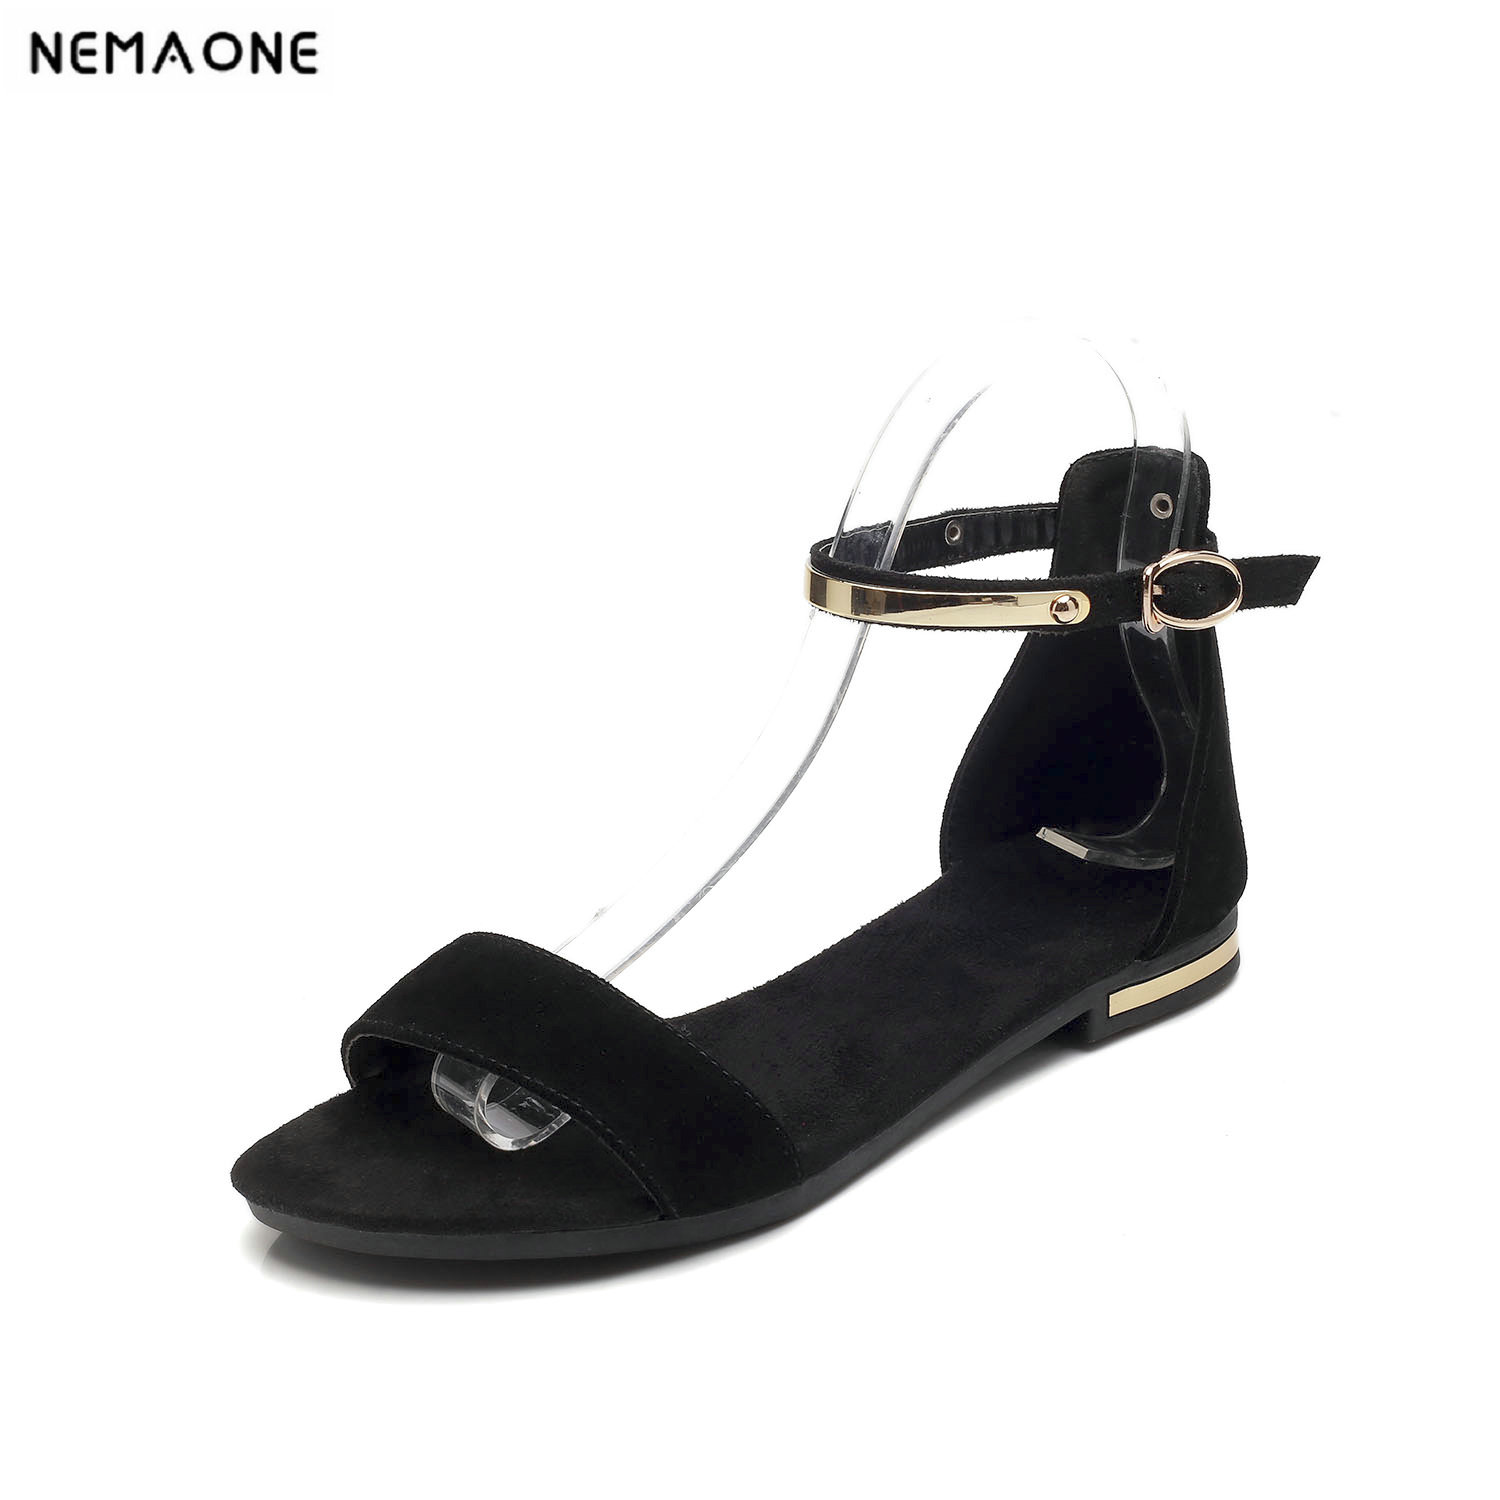 NEMAONE New genuine leather women sandals flat shoes woman summer style beach shoes girls sandals<br>